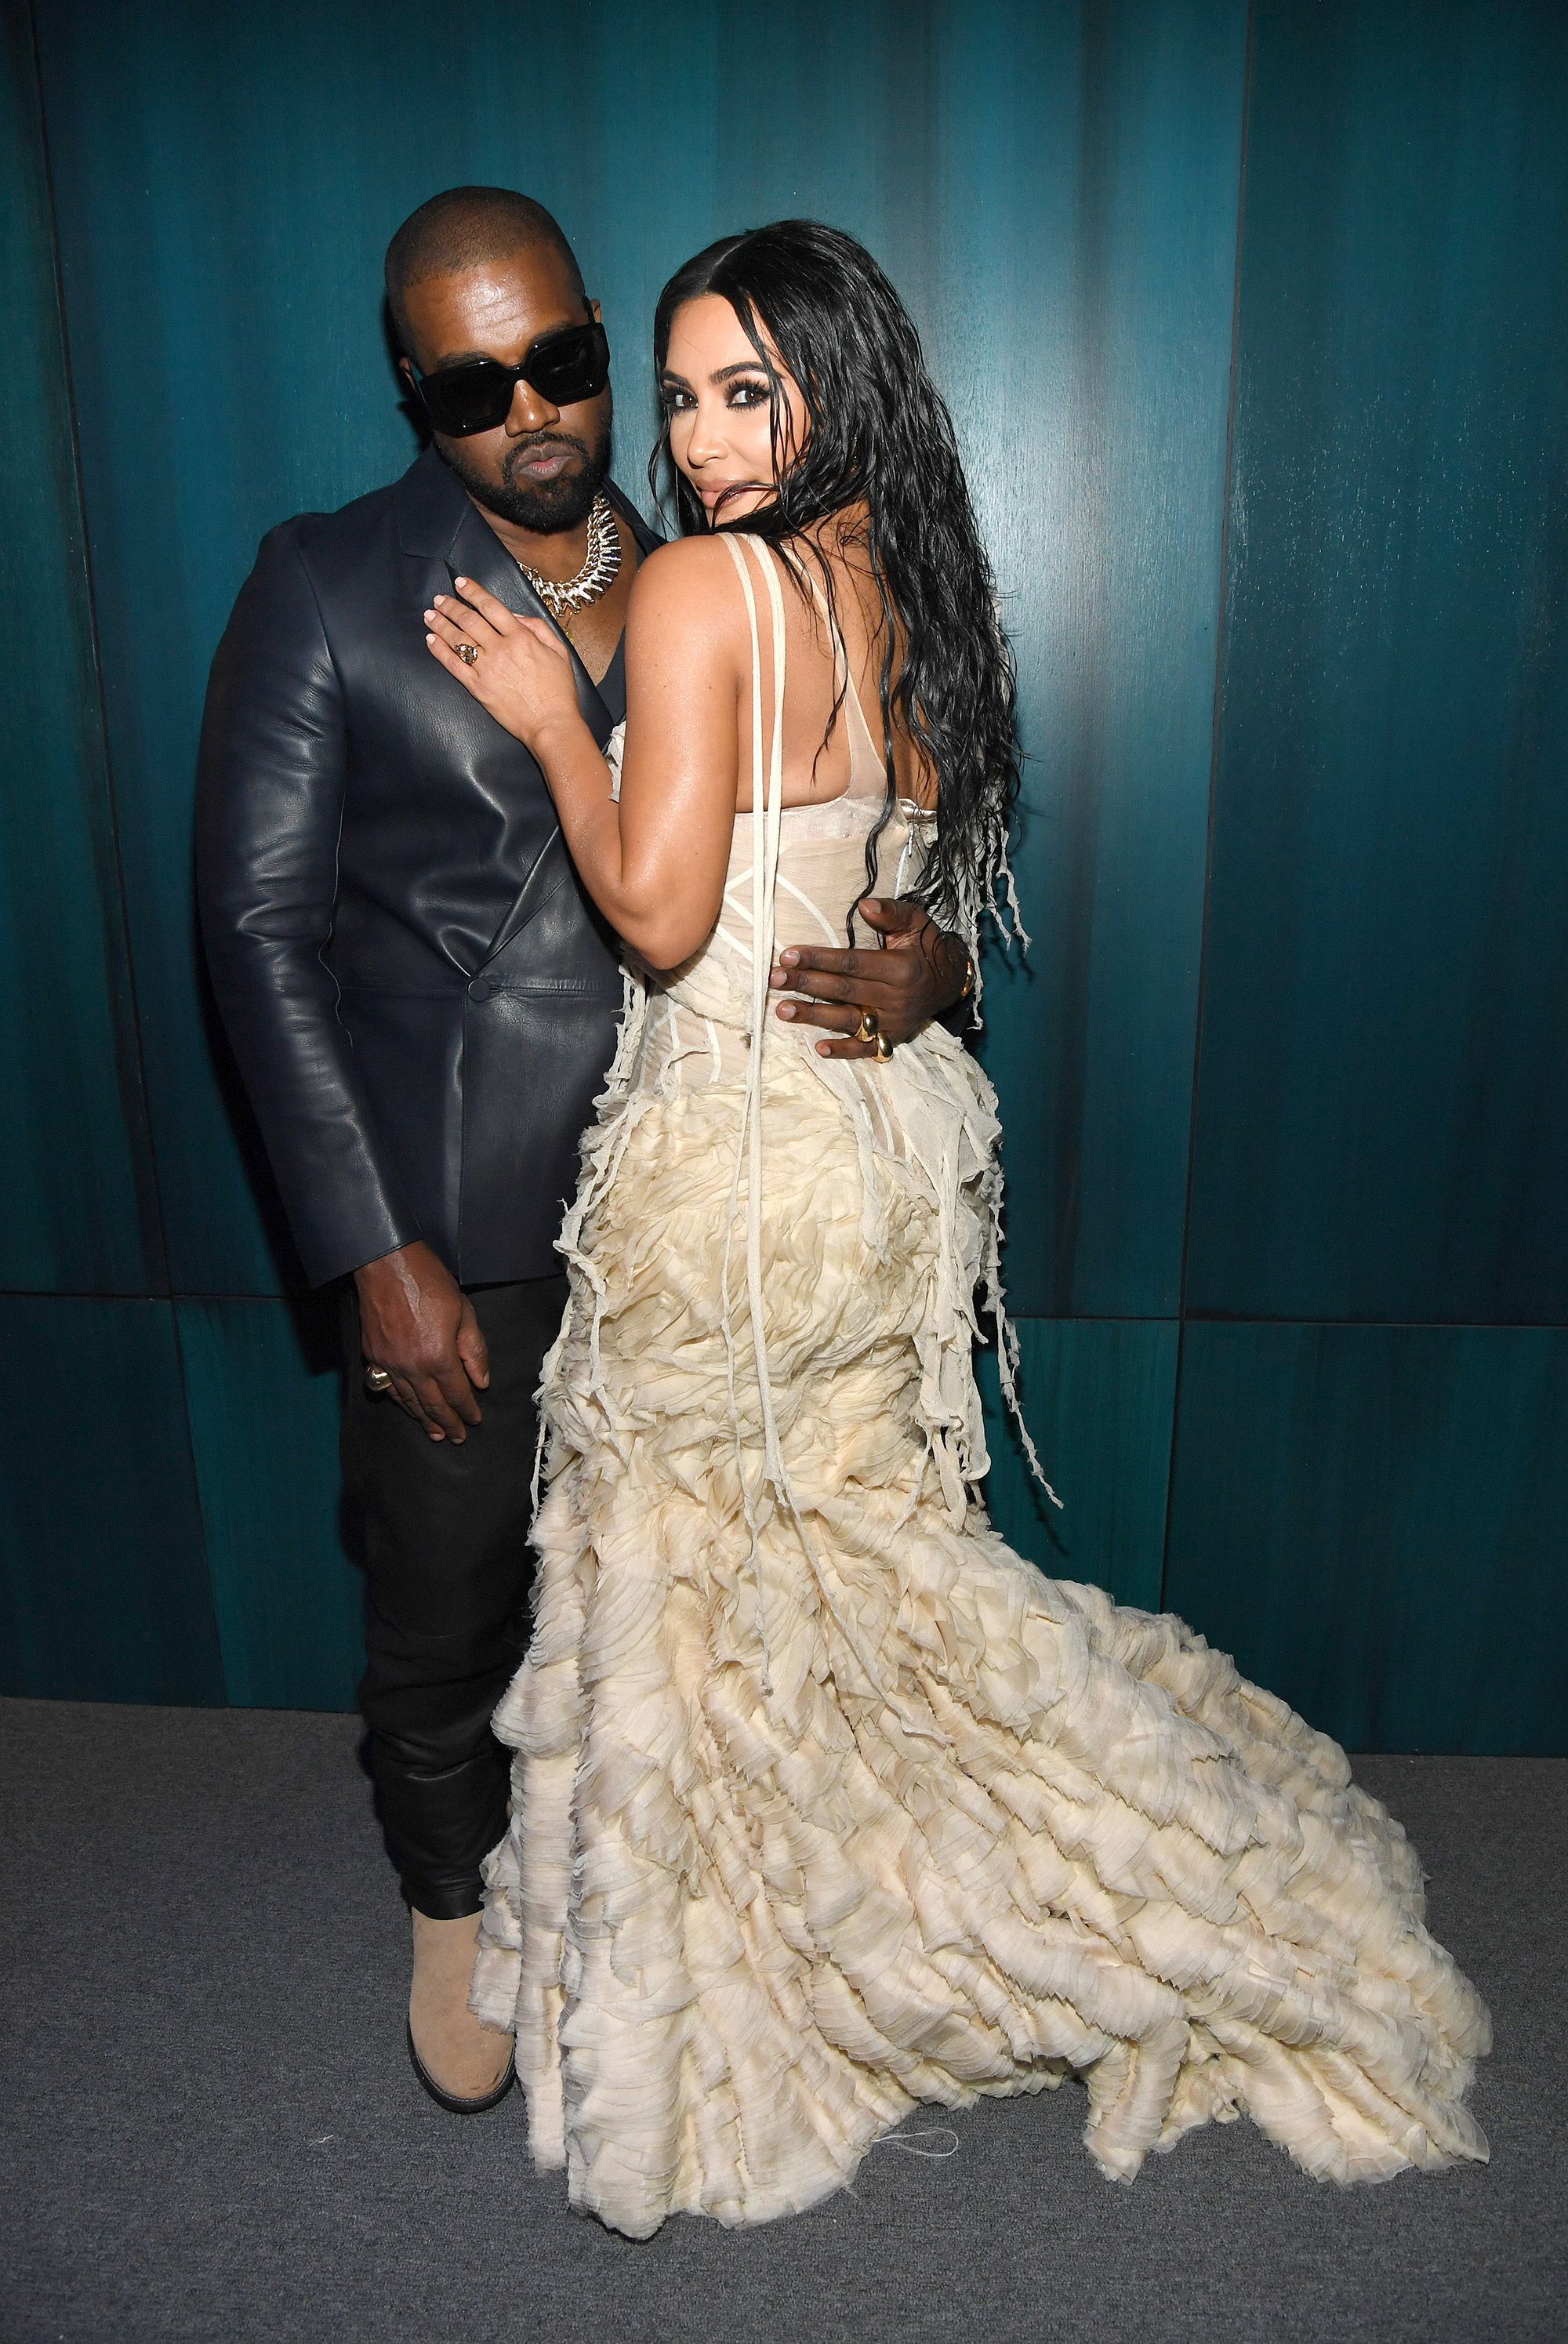 BEVERLY HILLS, CALIFORNIA - FEBRUARY 09: (L-R) Kanye West and Kim Kardashian West attend the 2020 Vanity Fair Oscar Party hosted by Radhika Jones at Wallis Annenberg Center for the Performing Arts on February 09, 2020 in Beverly Hills, California. КРЕДИТ Kevin Mazur/VF20/WireImage/Getty Images